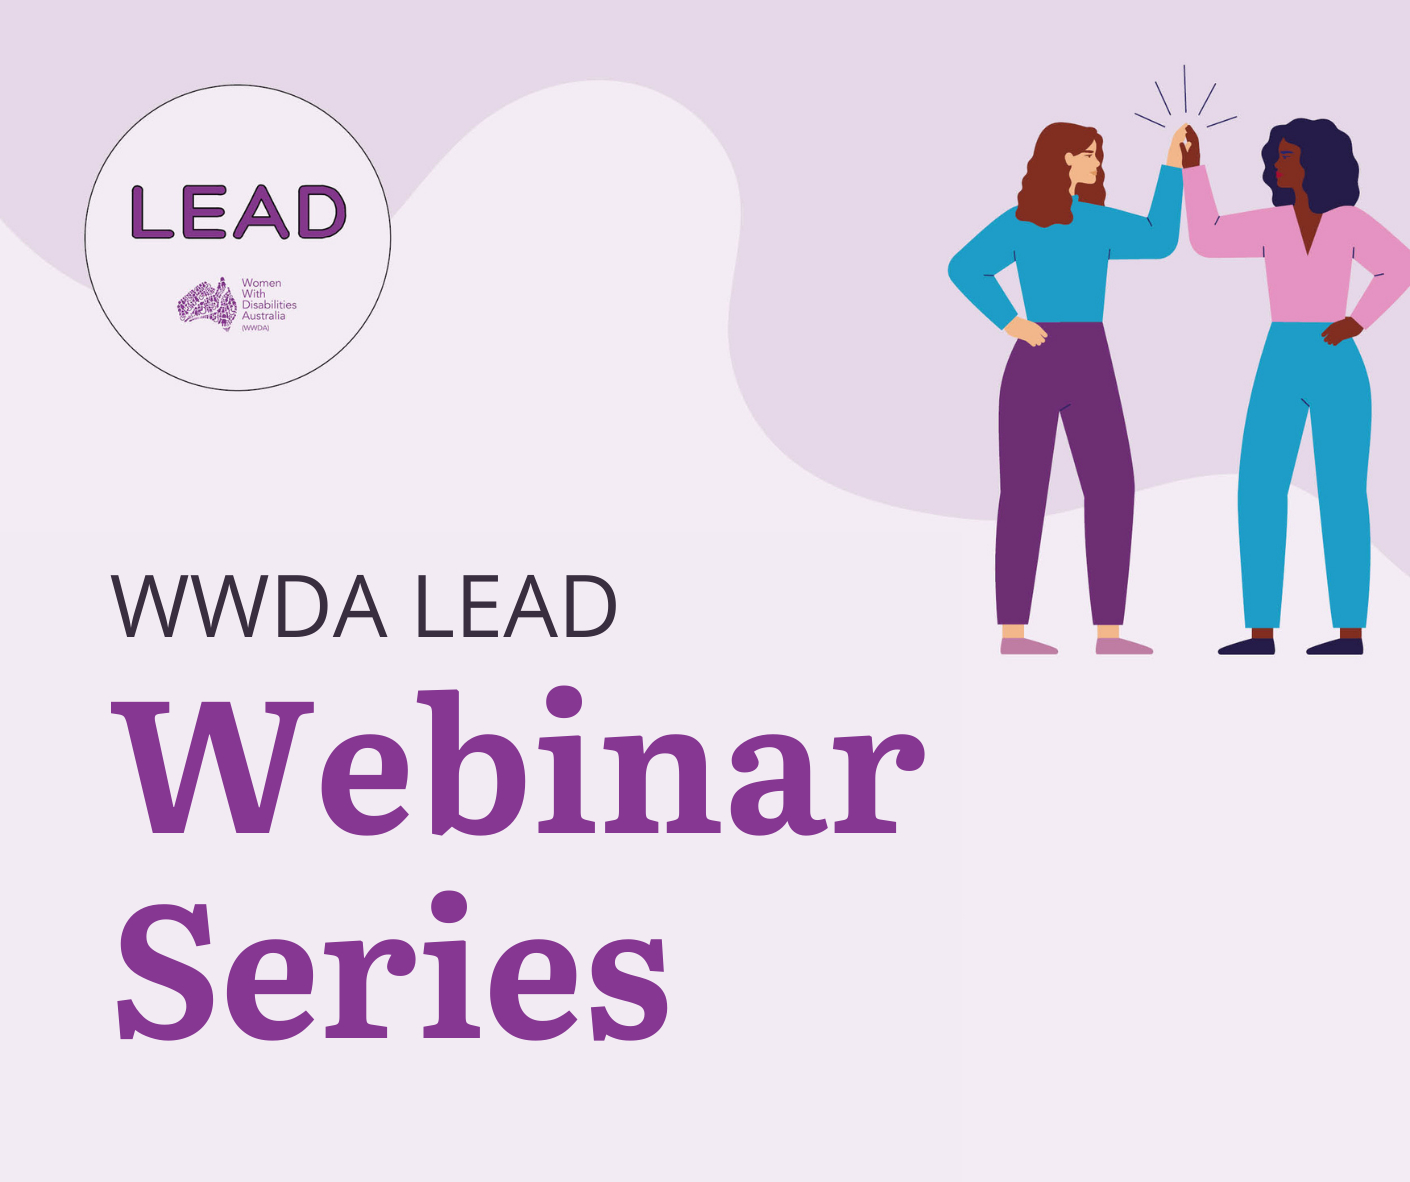 Purple background, text on the image reads: WWDA LEAD Webinar Series, Avenues of Support, Tips and tricks to avoid burnout